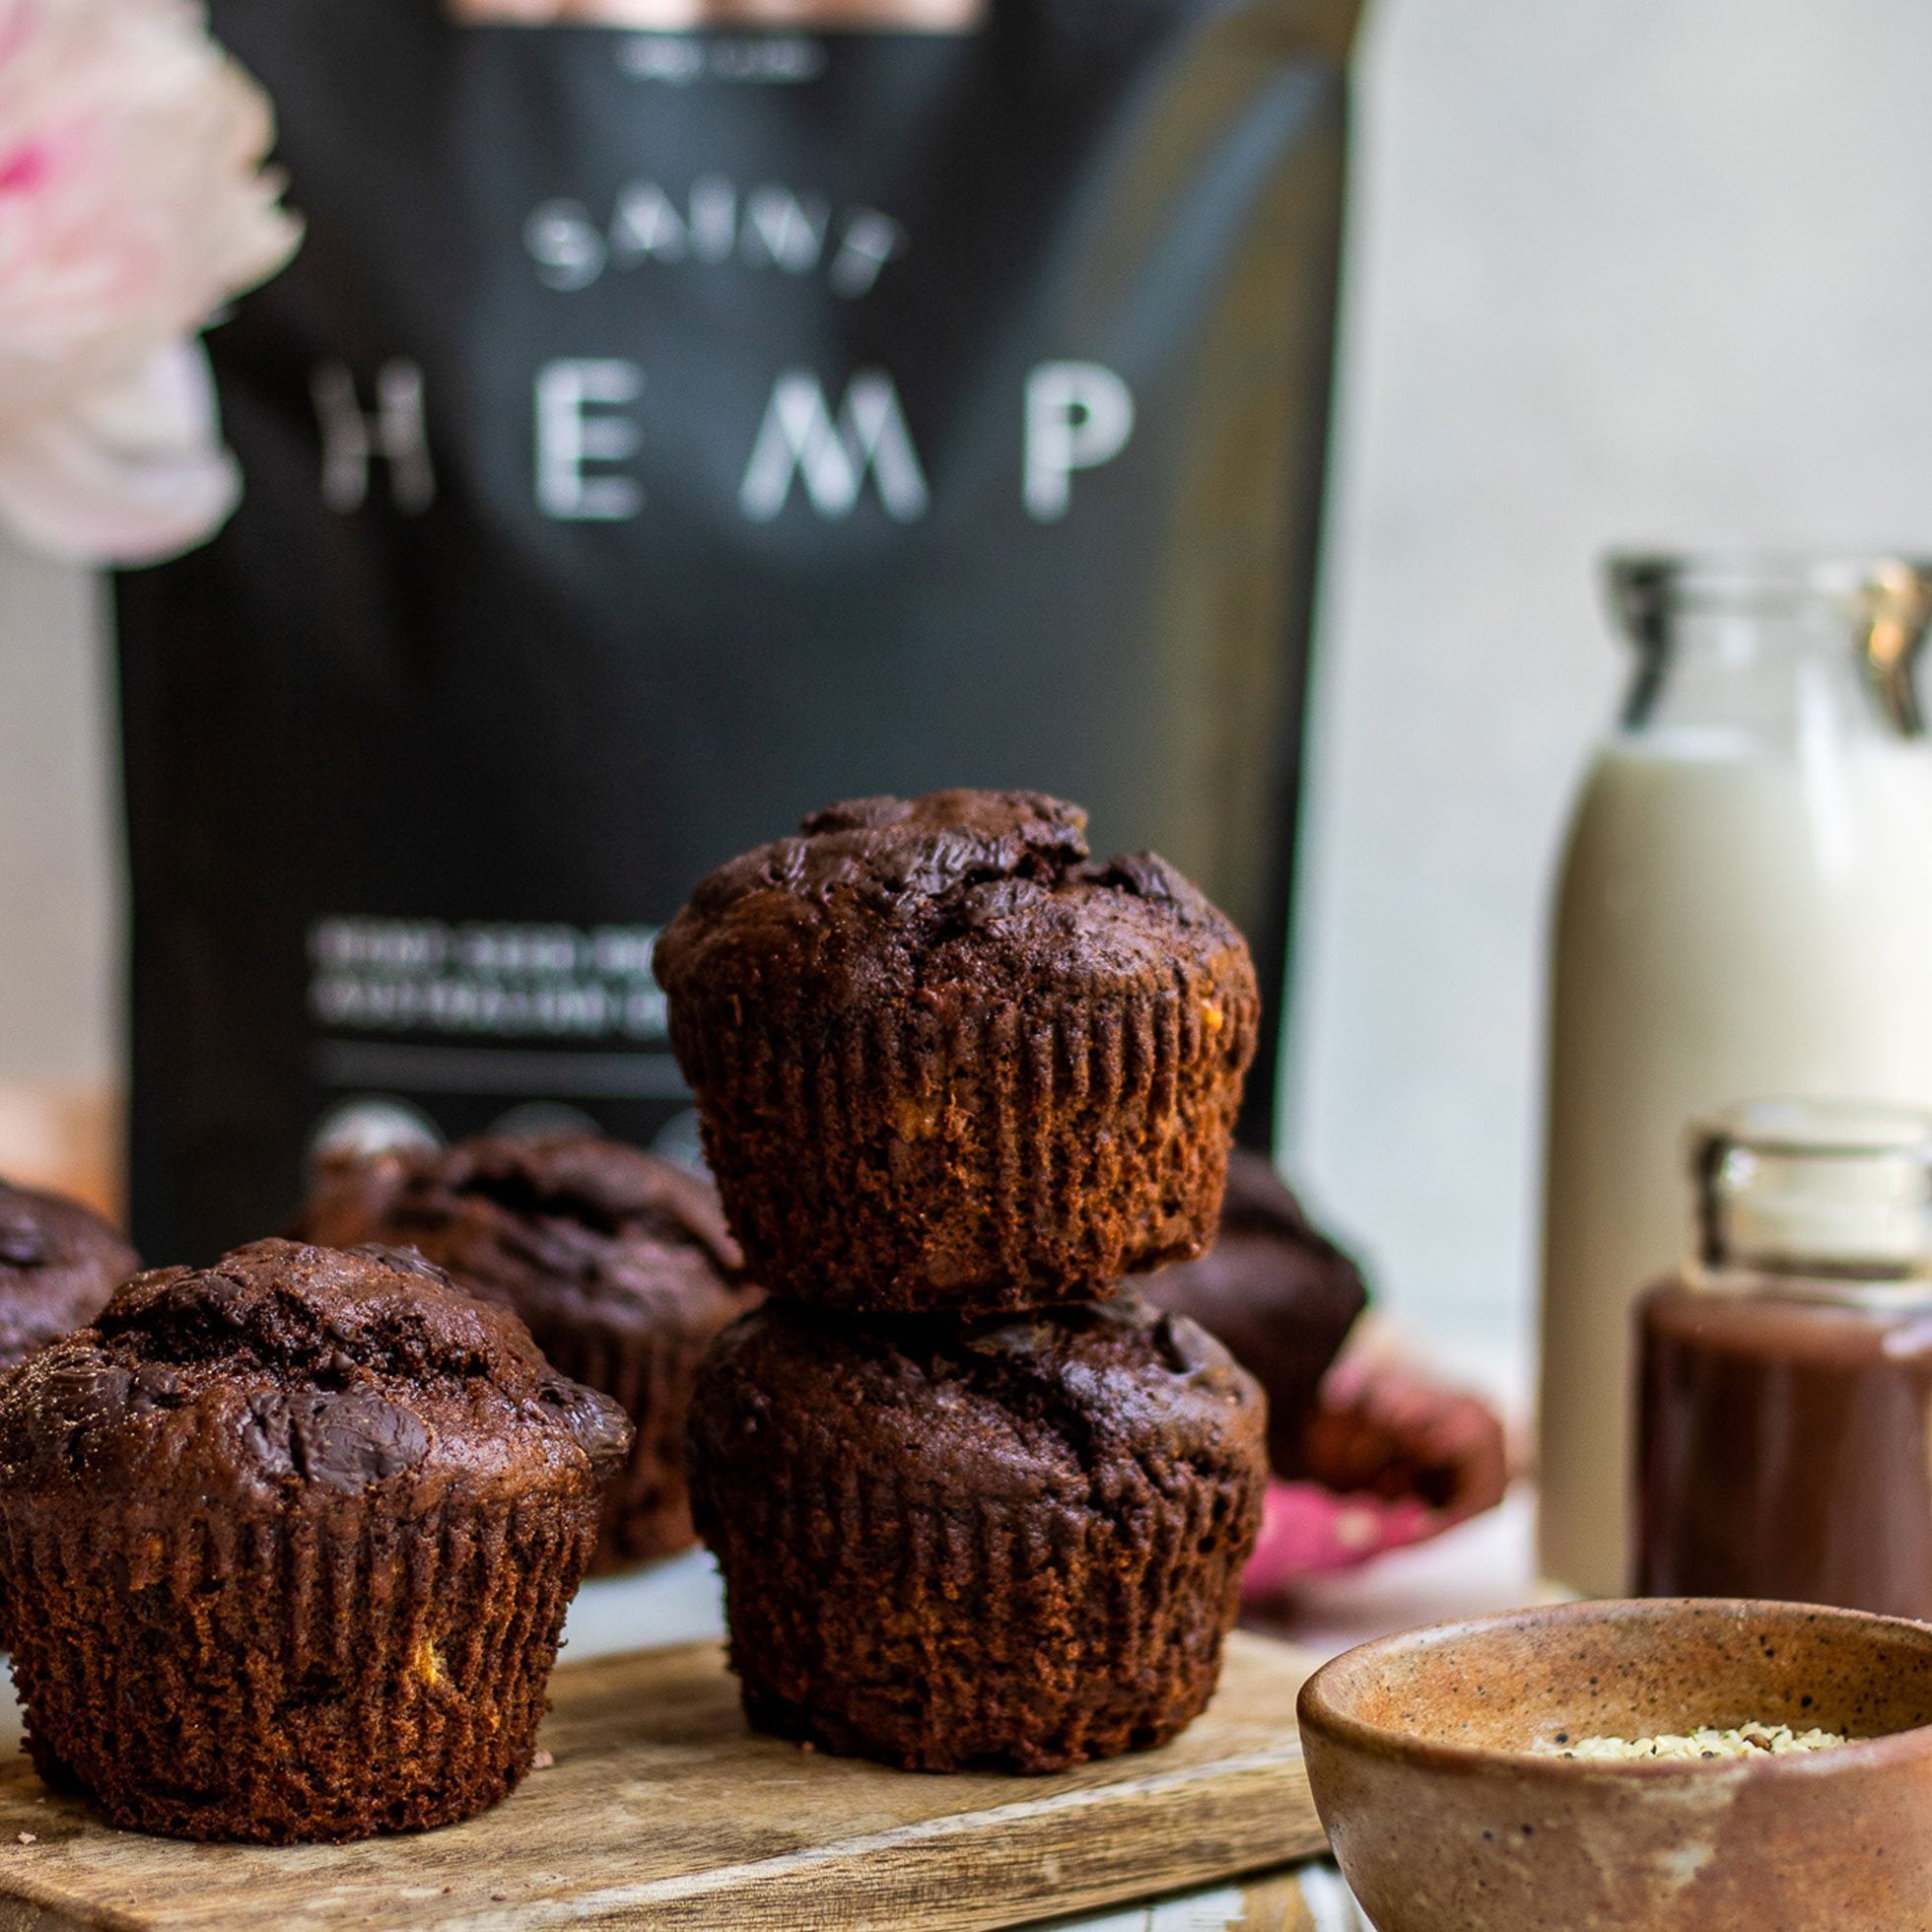 Double Chocolate Hemp Protein Muffins